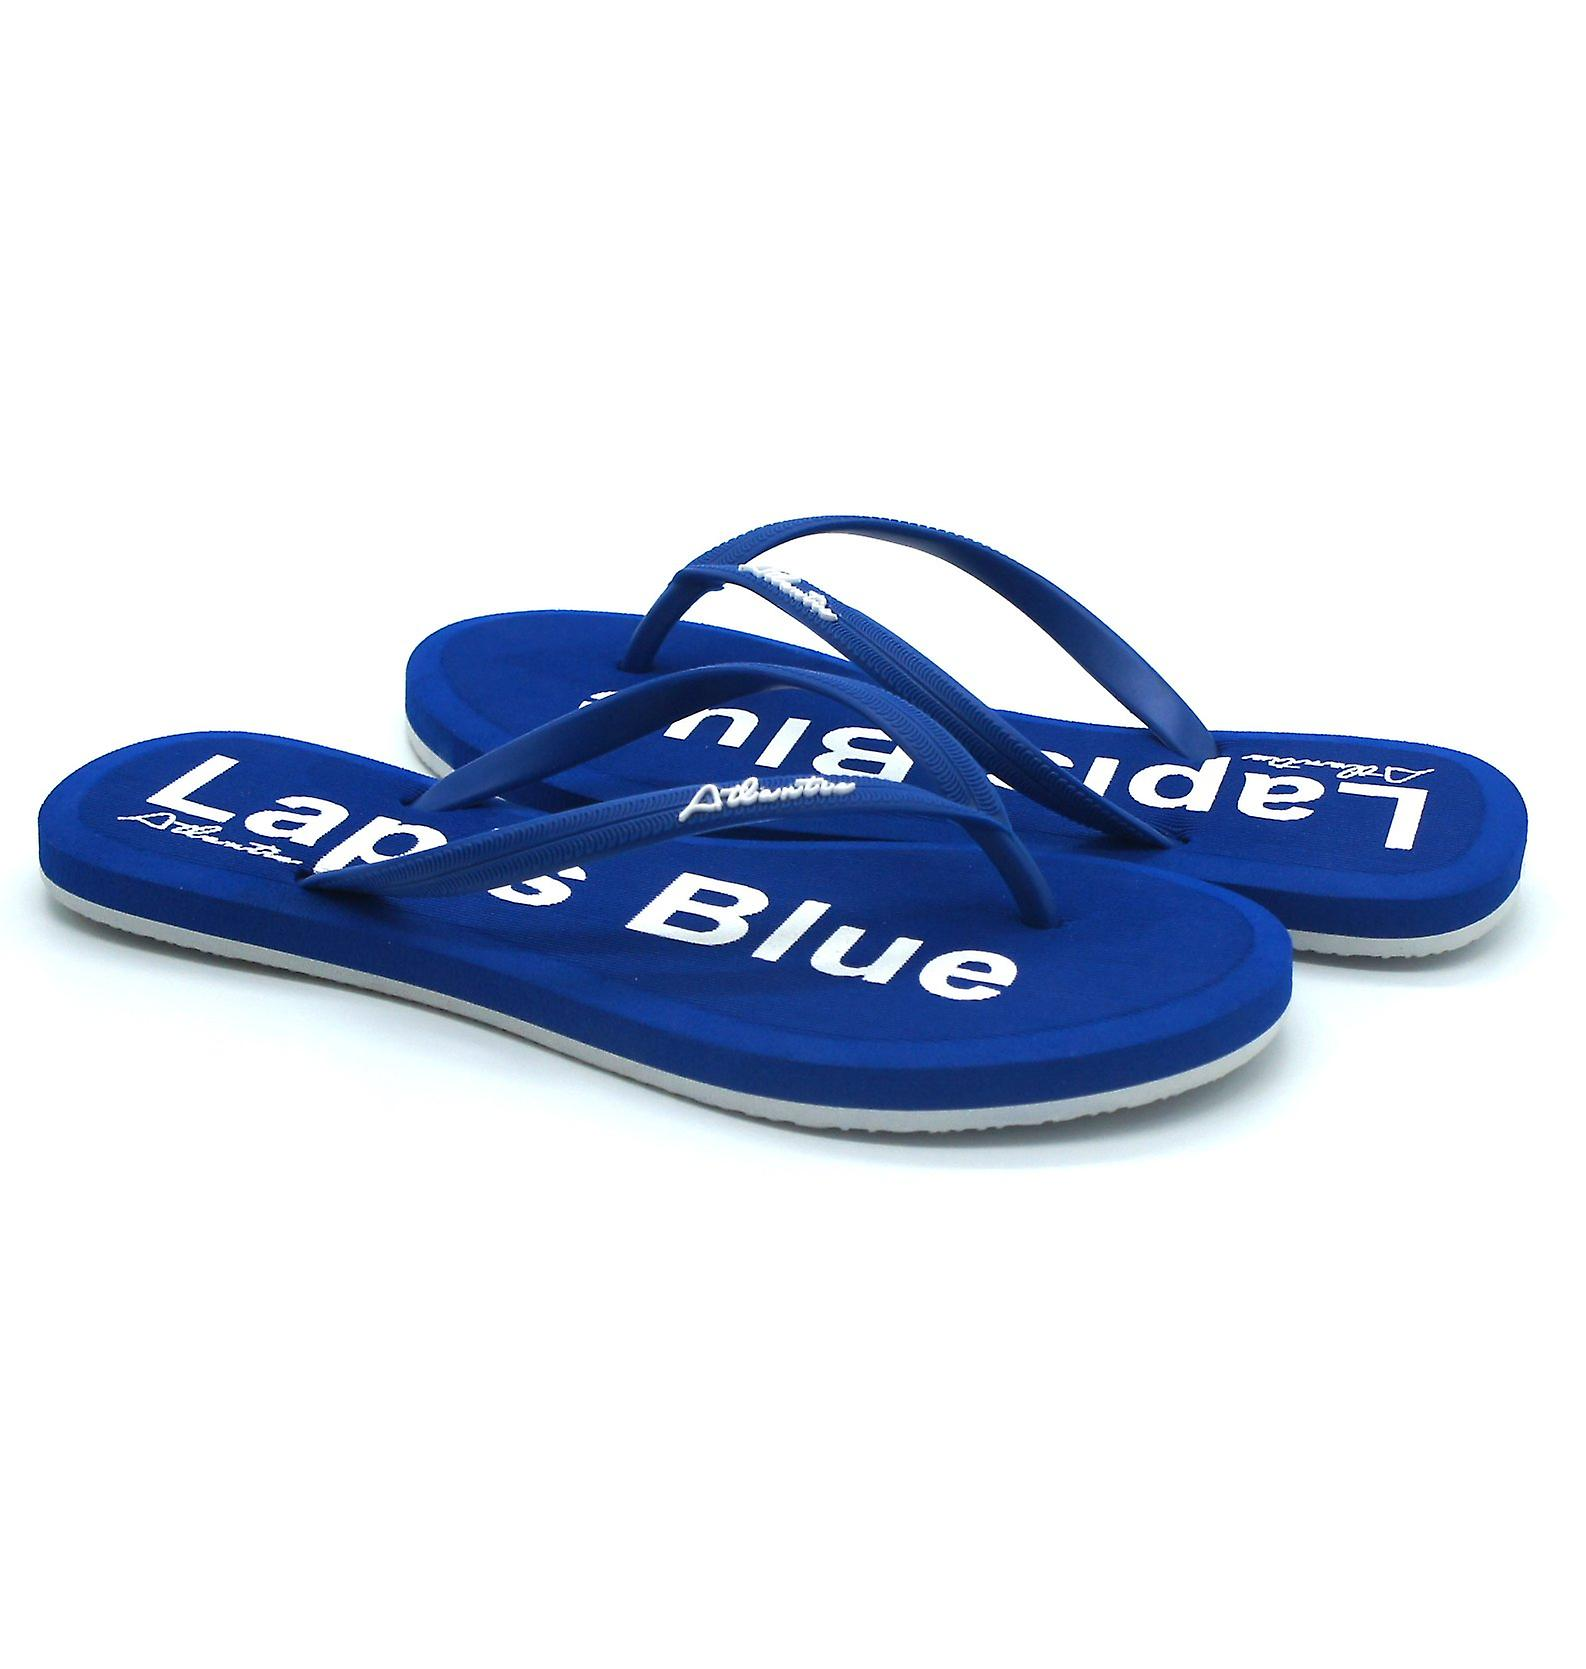 Atlantis Shoes Women Supportive Cushioned Comfortable Sandals Flip Flops Simply Colorful Lapis Blue